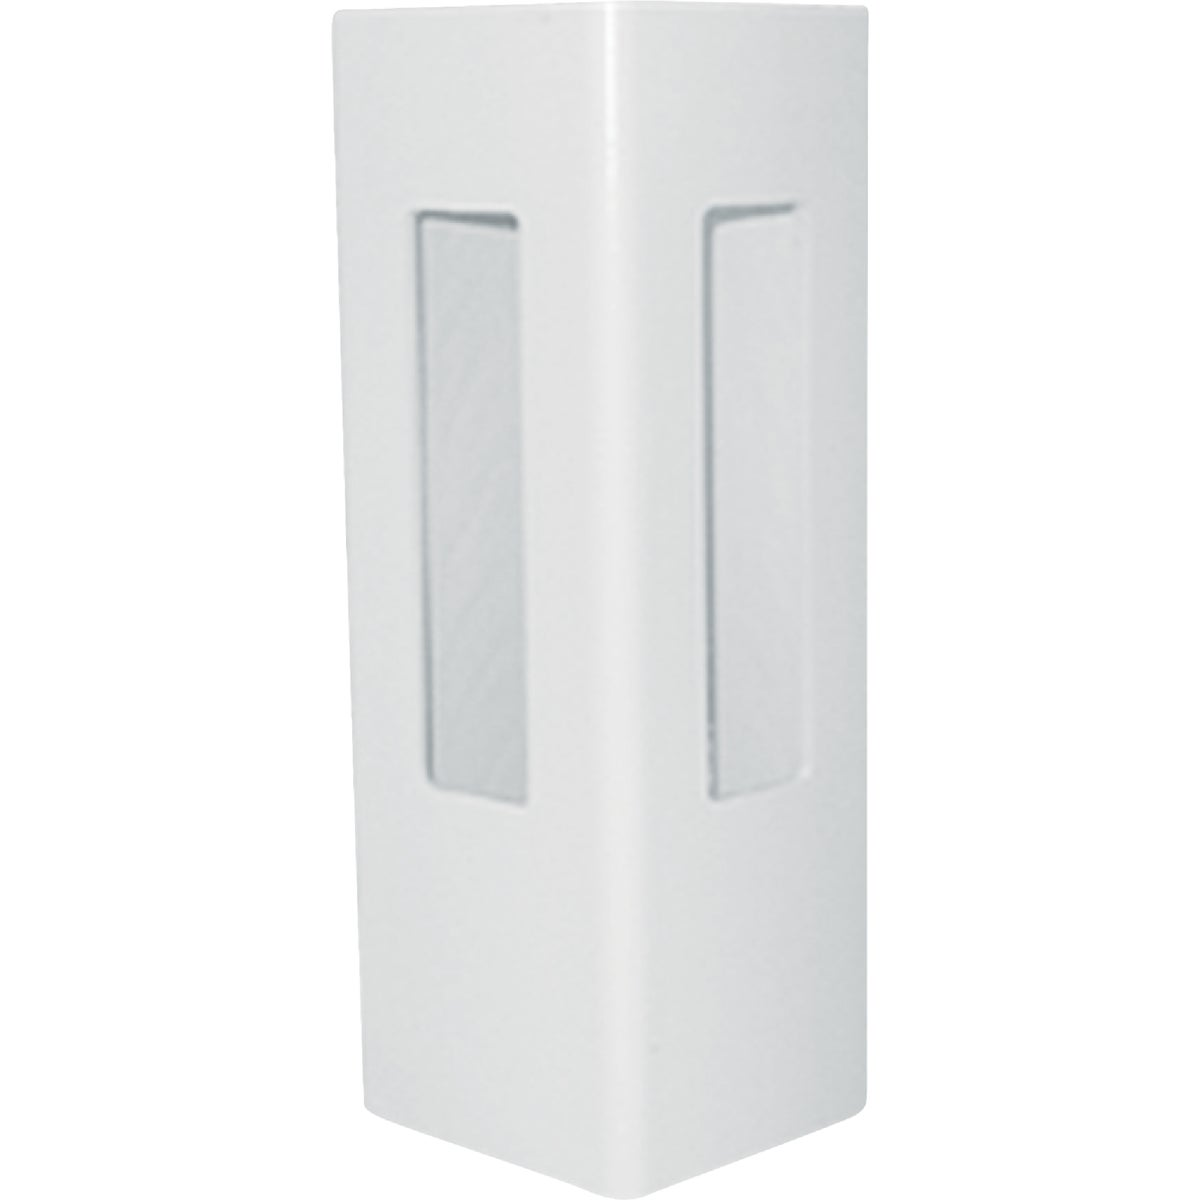 Genova Building Products 5X72 WHT 2-RAIL CRN POST FW652C